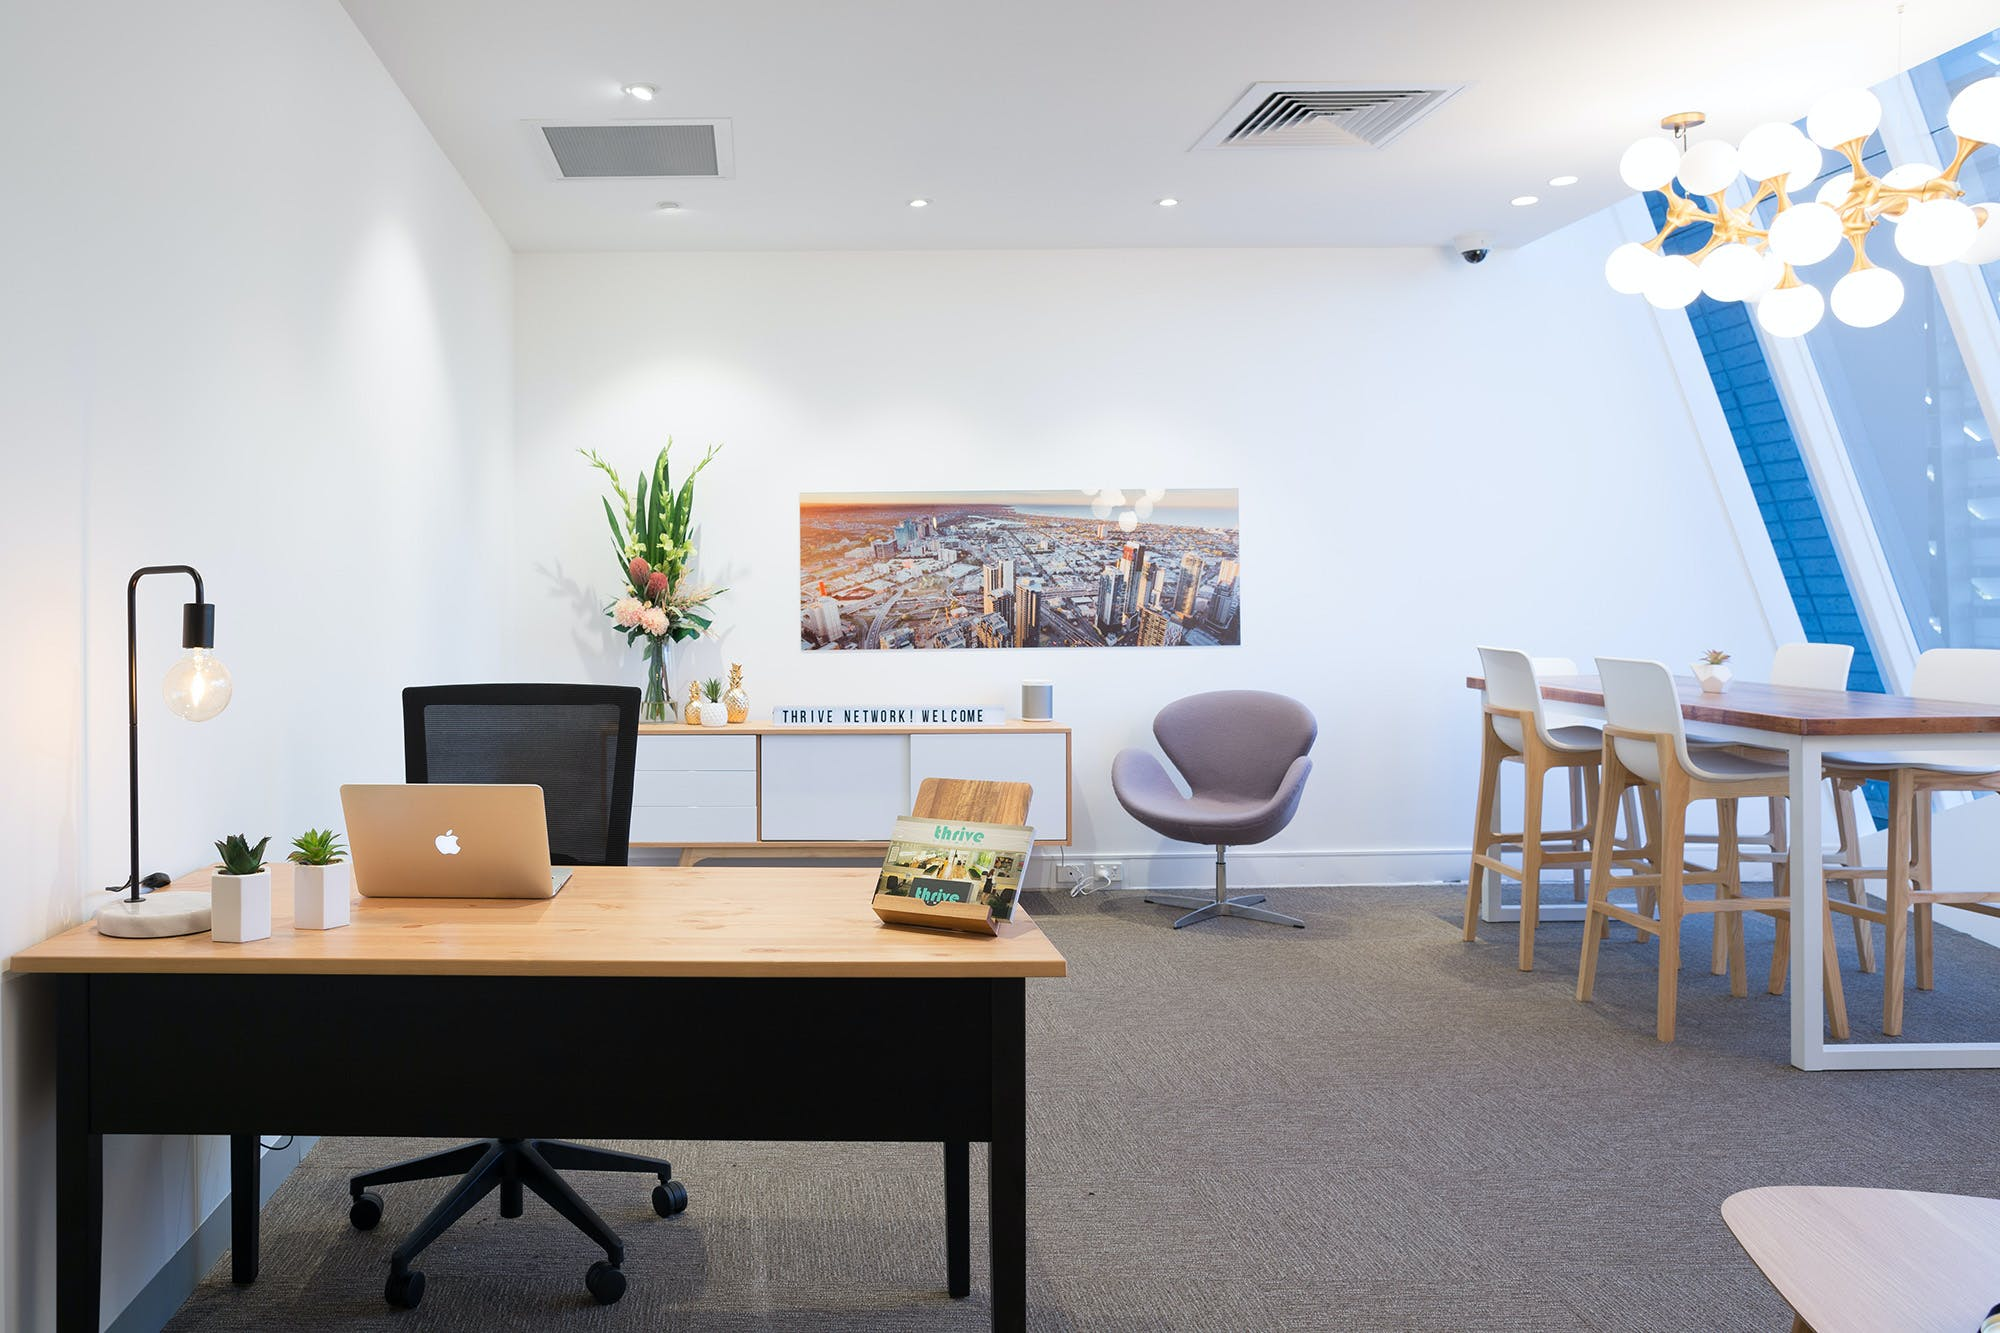 Coworking at The Thrive Network, image 1